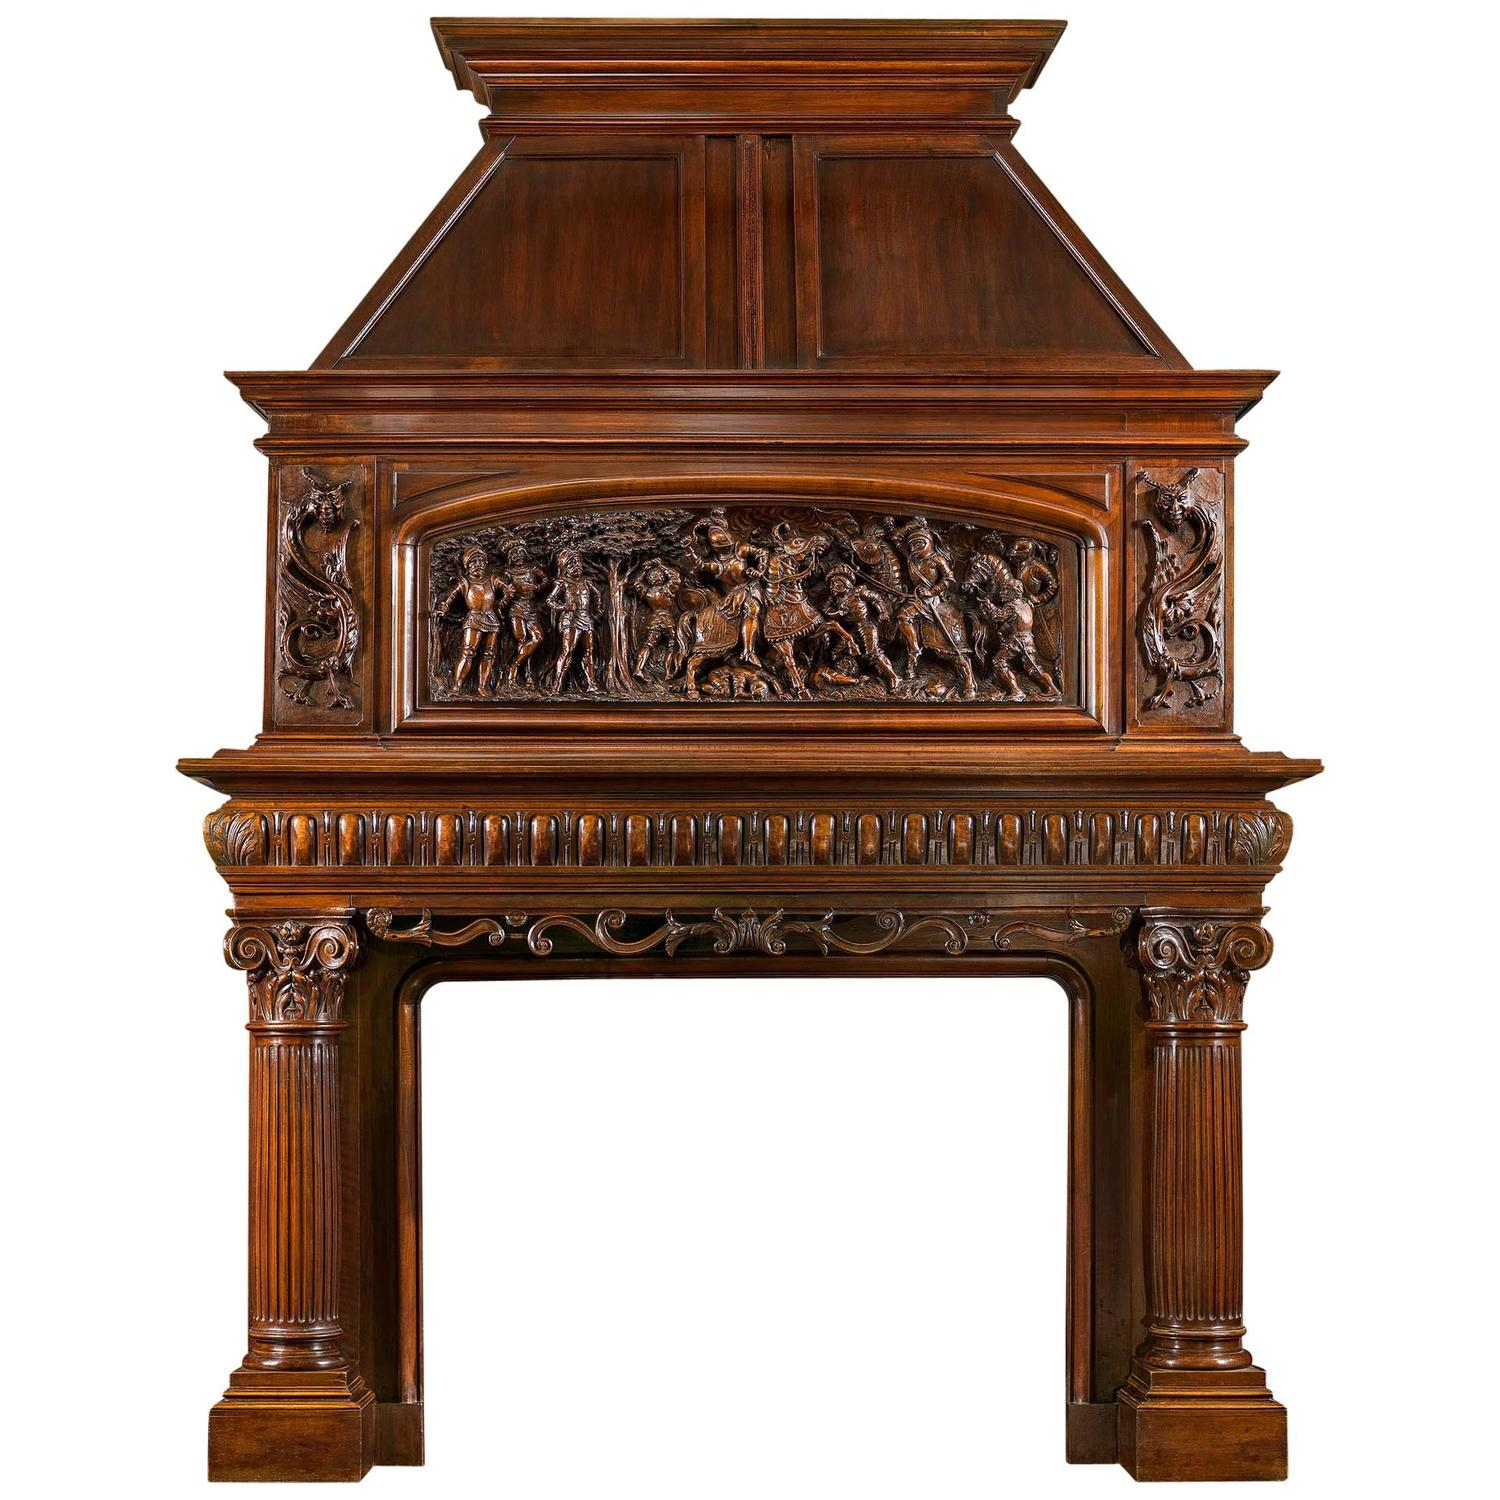 19th Century Antique French Fireplace Mantel Carved in Walnut For Sale at  1stdibs 8416327b63